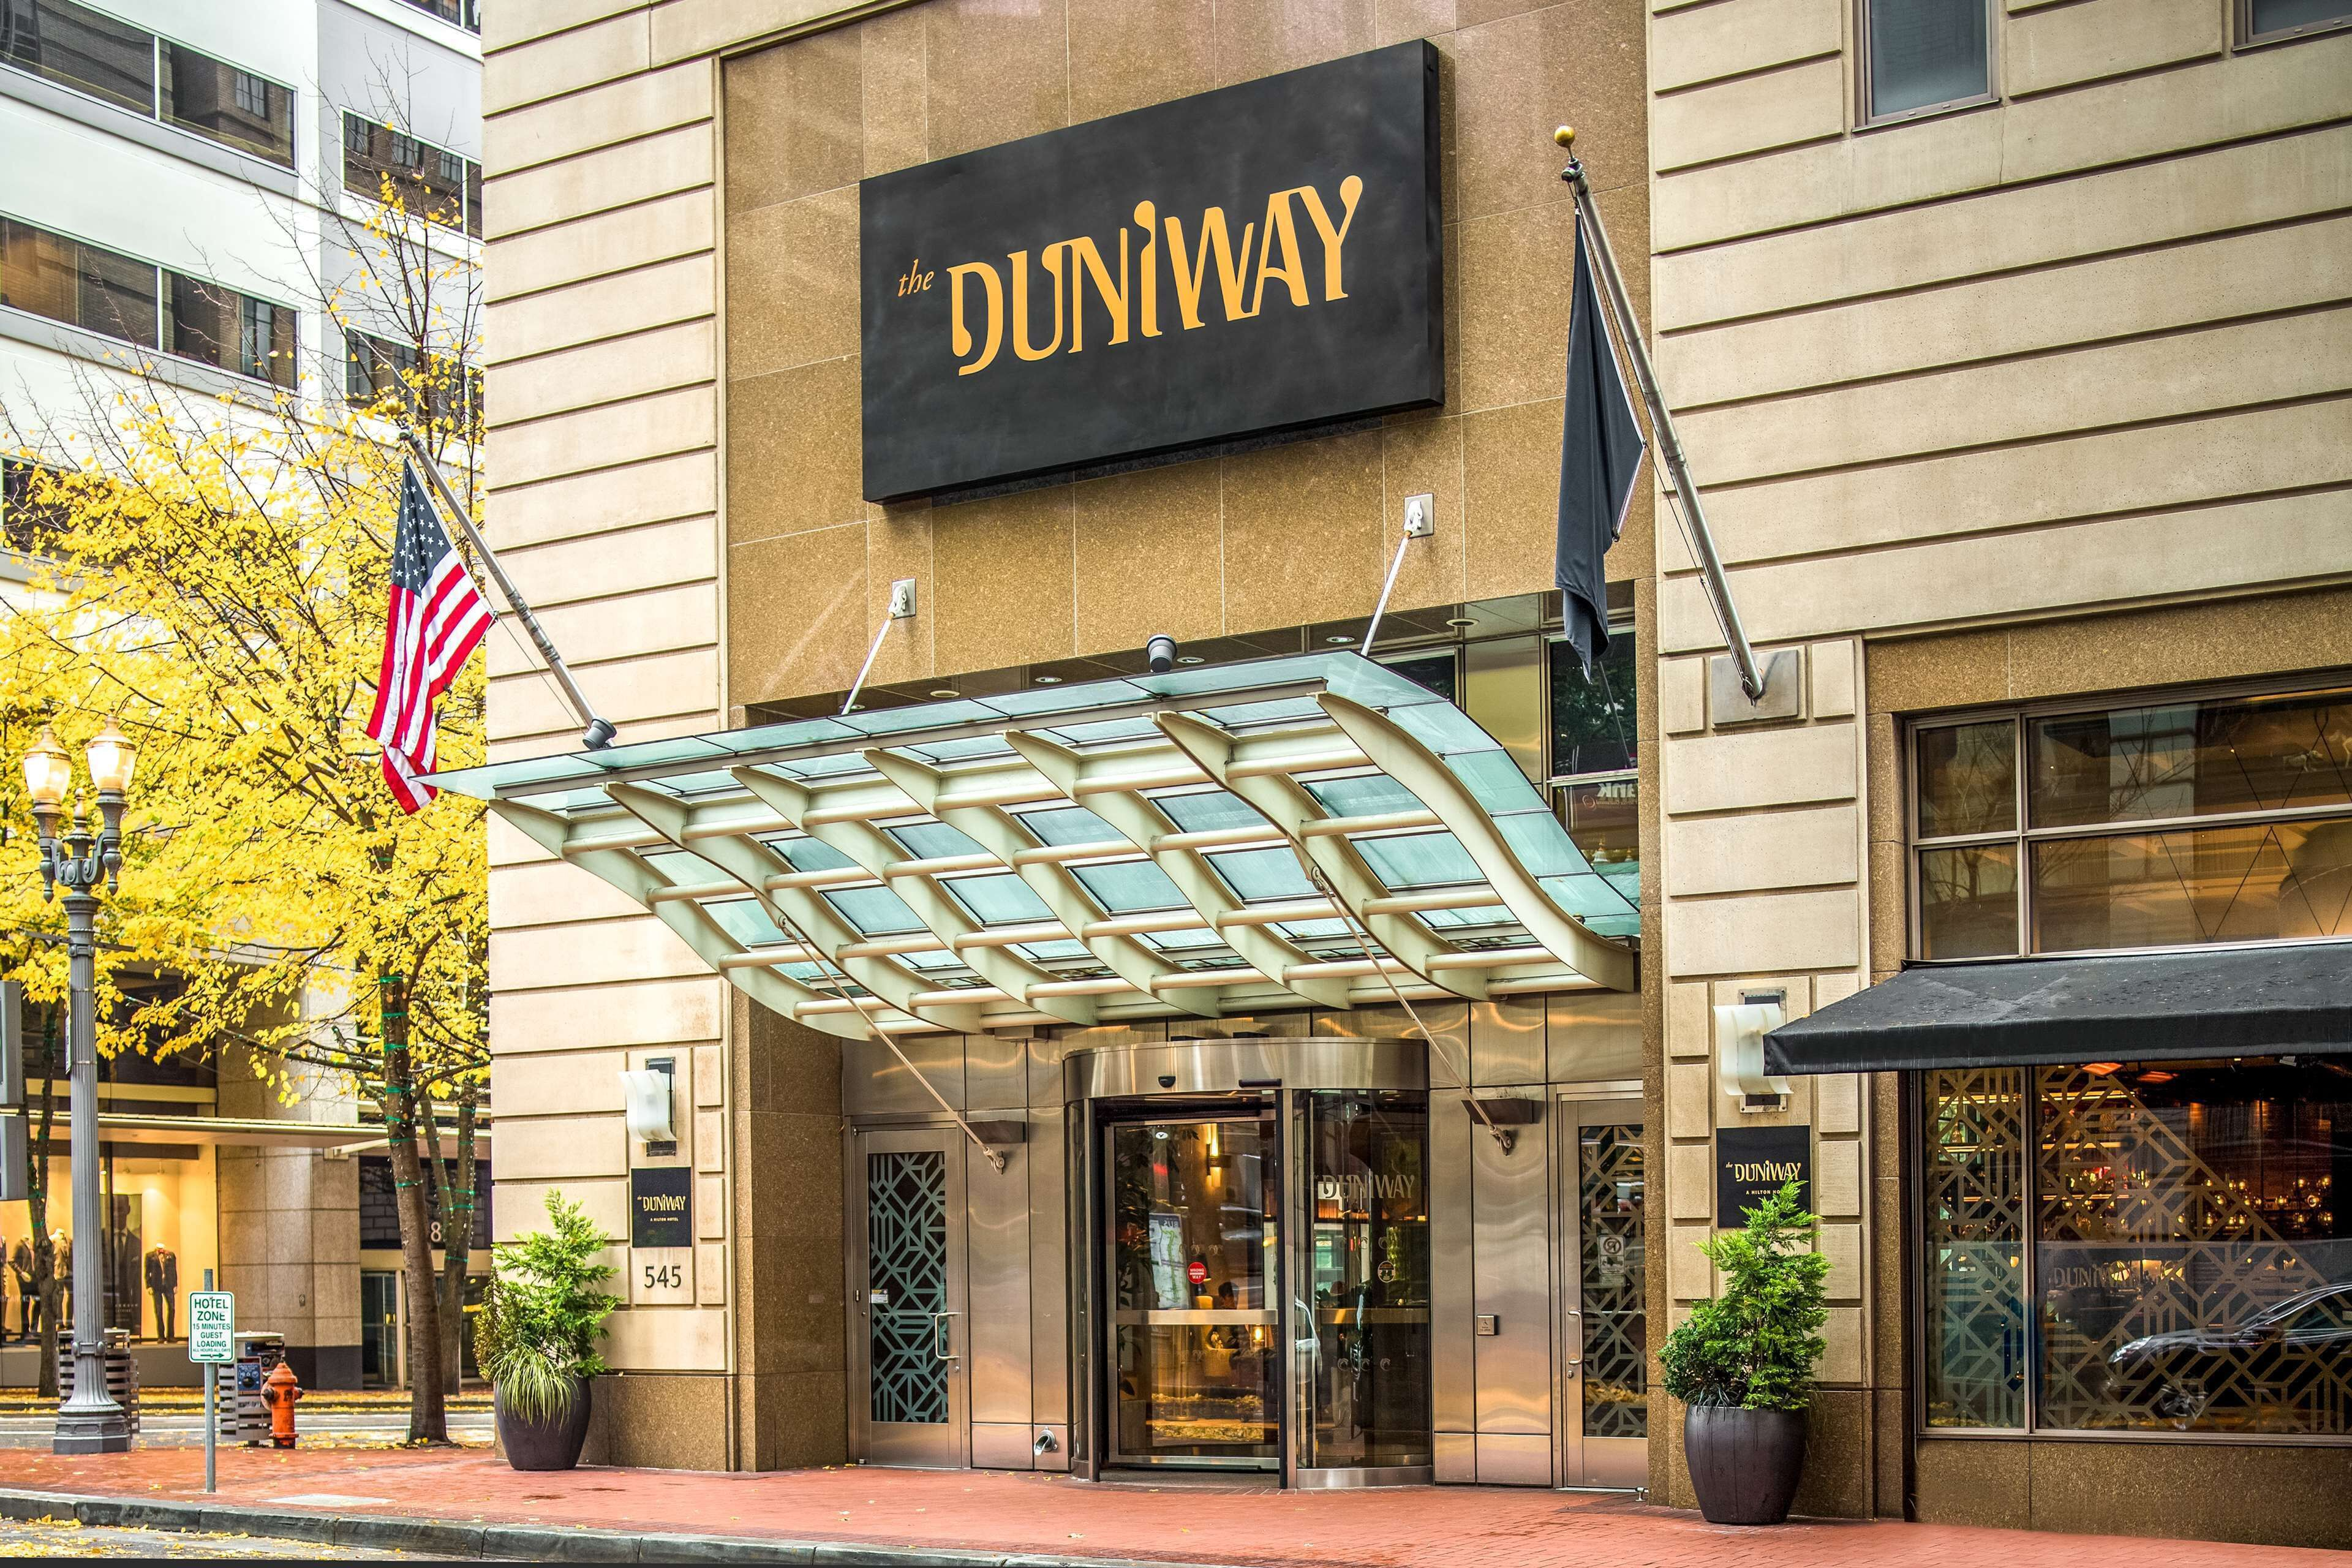 Courtesy of the Duniway Portland, A Hilton Hotel / Expedia